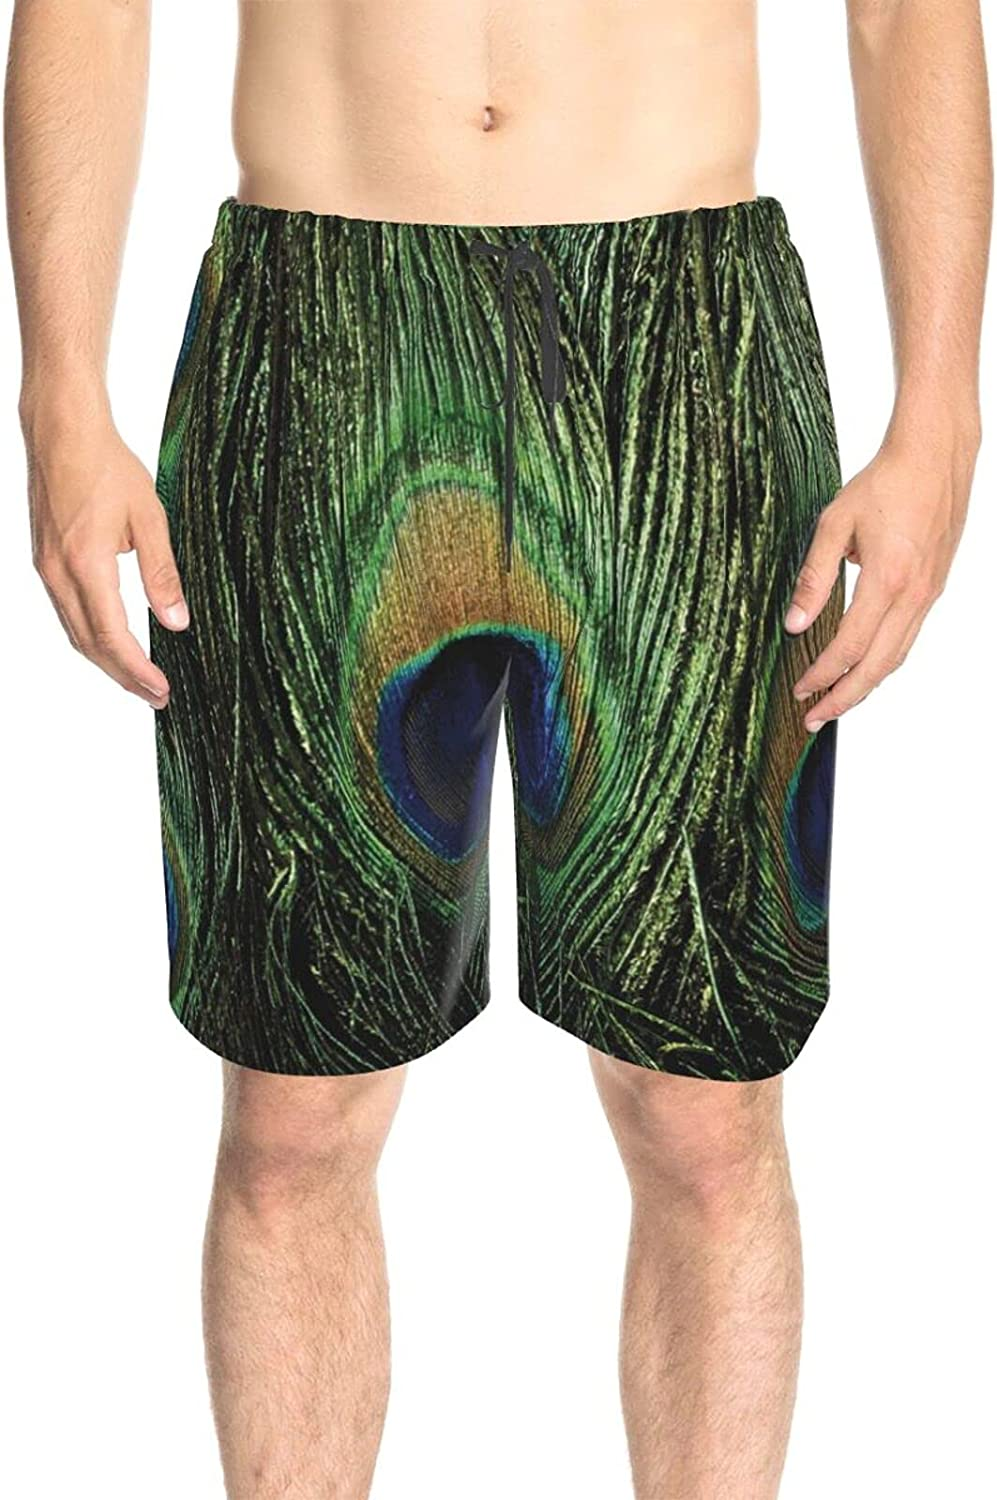 JINJUELS Mens Swim Trunks Peacock Tail Feathers Swim Boardshorts Fast Dry Fashion Swimming Trunks with Pockets